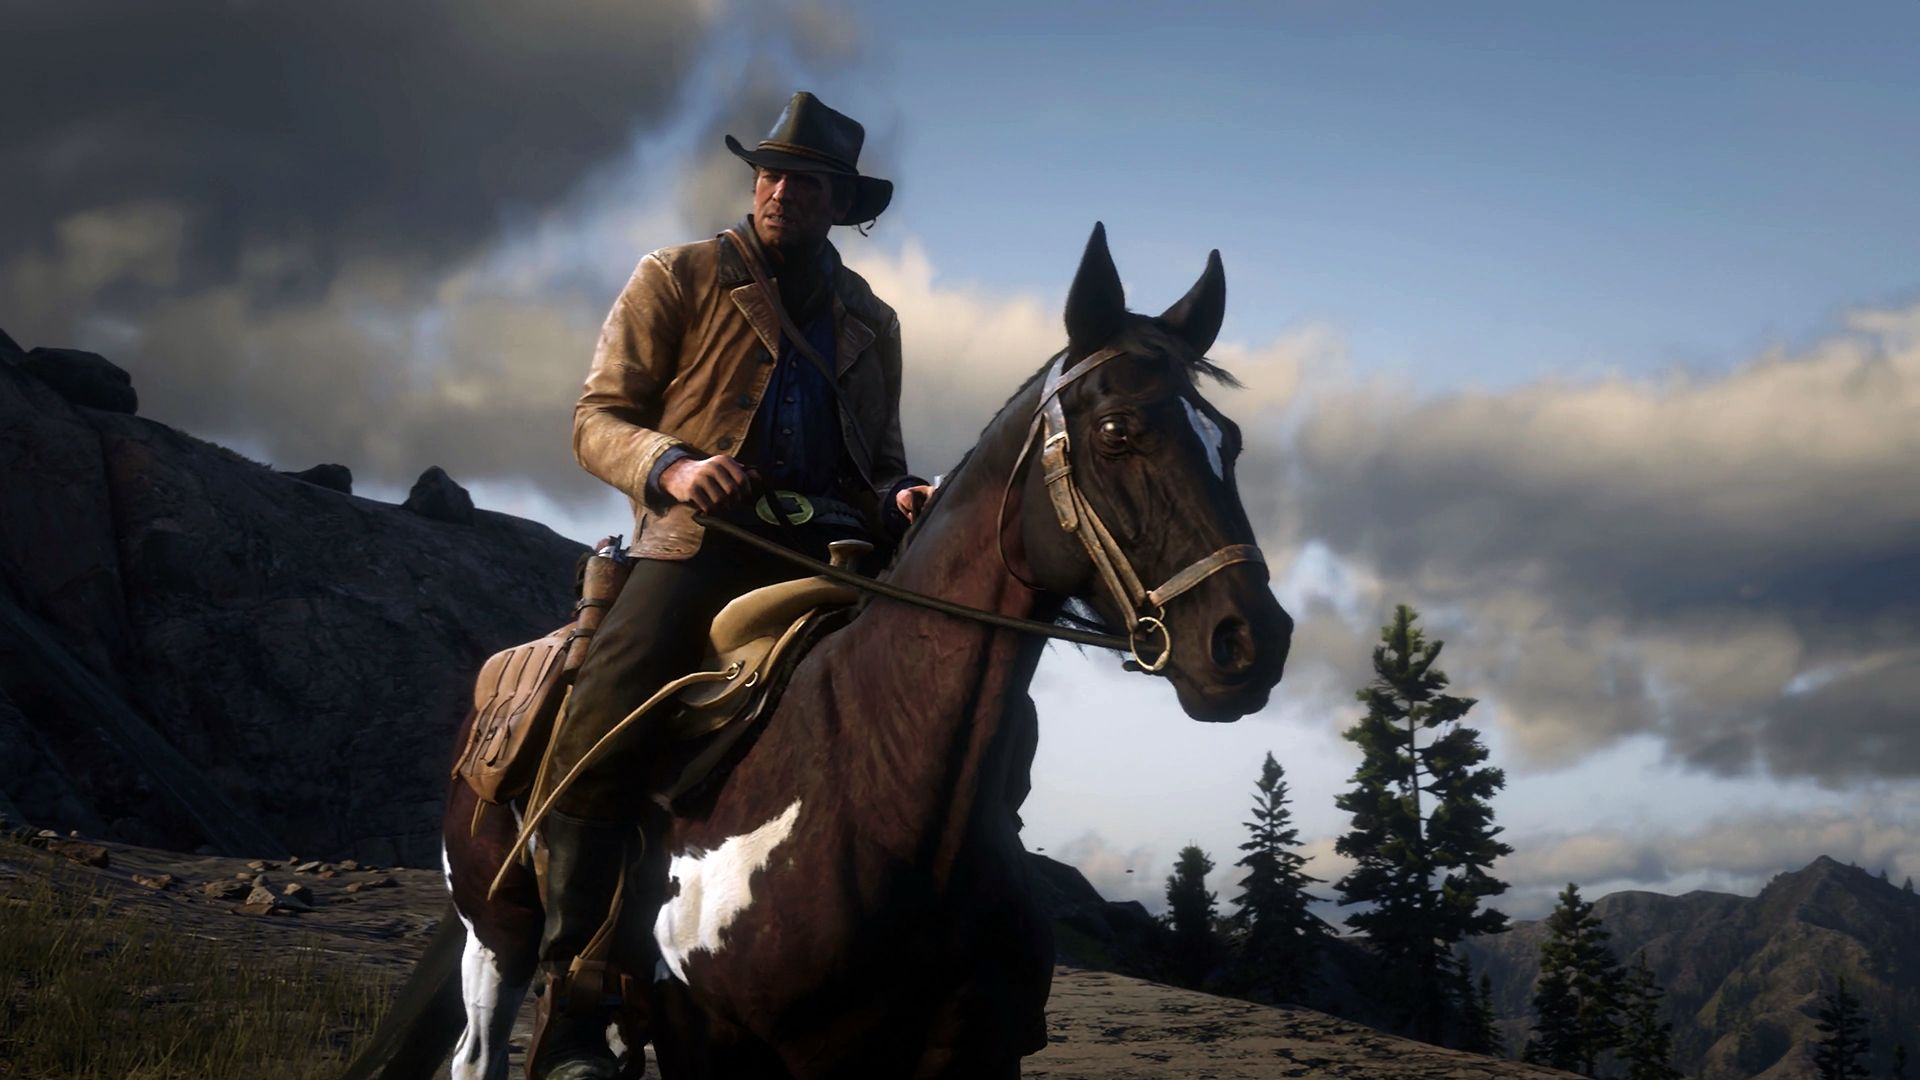 Horse Red Dead Redemption 2 Wallpapers Top Free Horse Red Dead Redemption 2 Backgrounds Wallpaperaccess